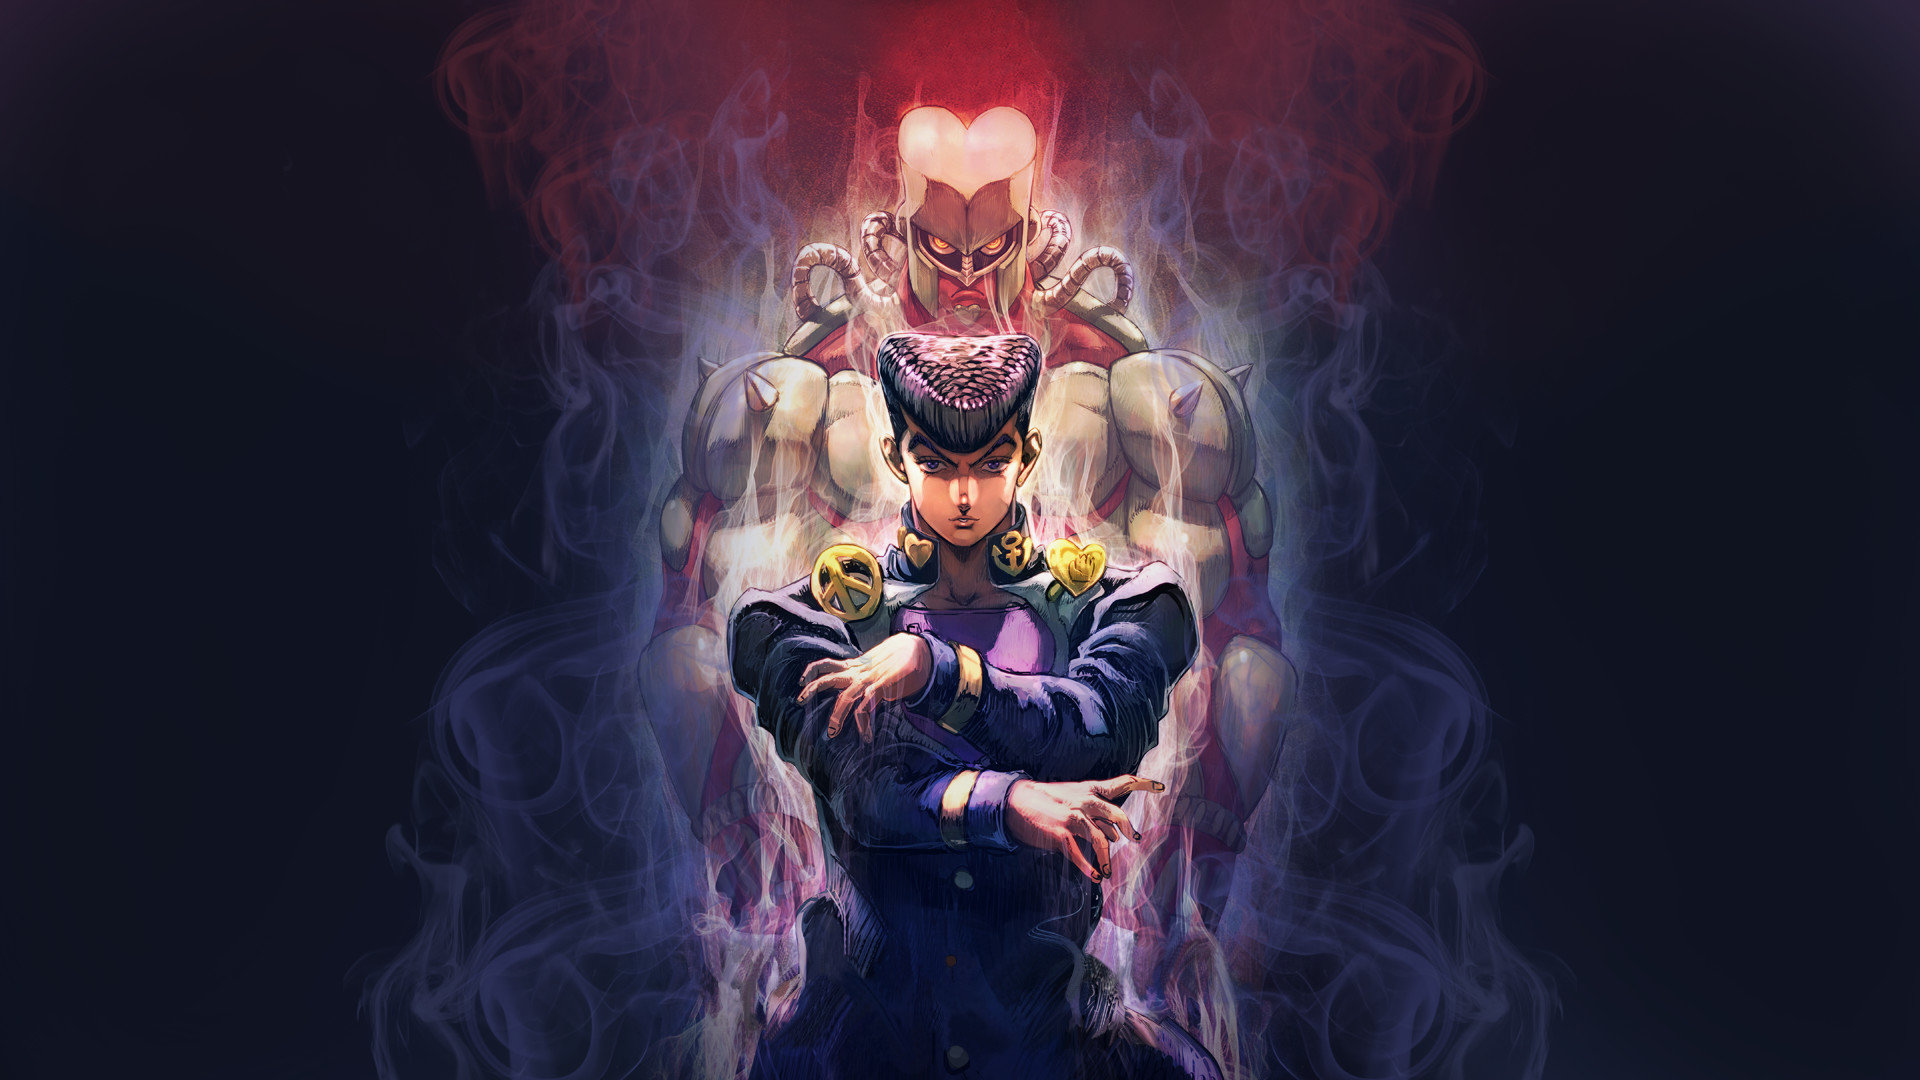 High resolution Jojo's Bizarre Adventure full hd wallpaper ID:296783 for PC